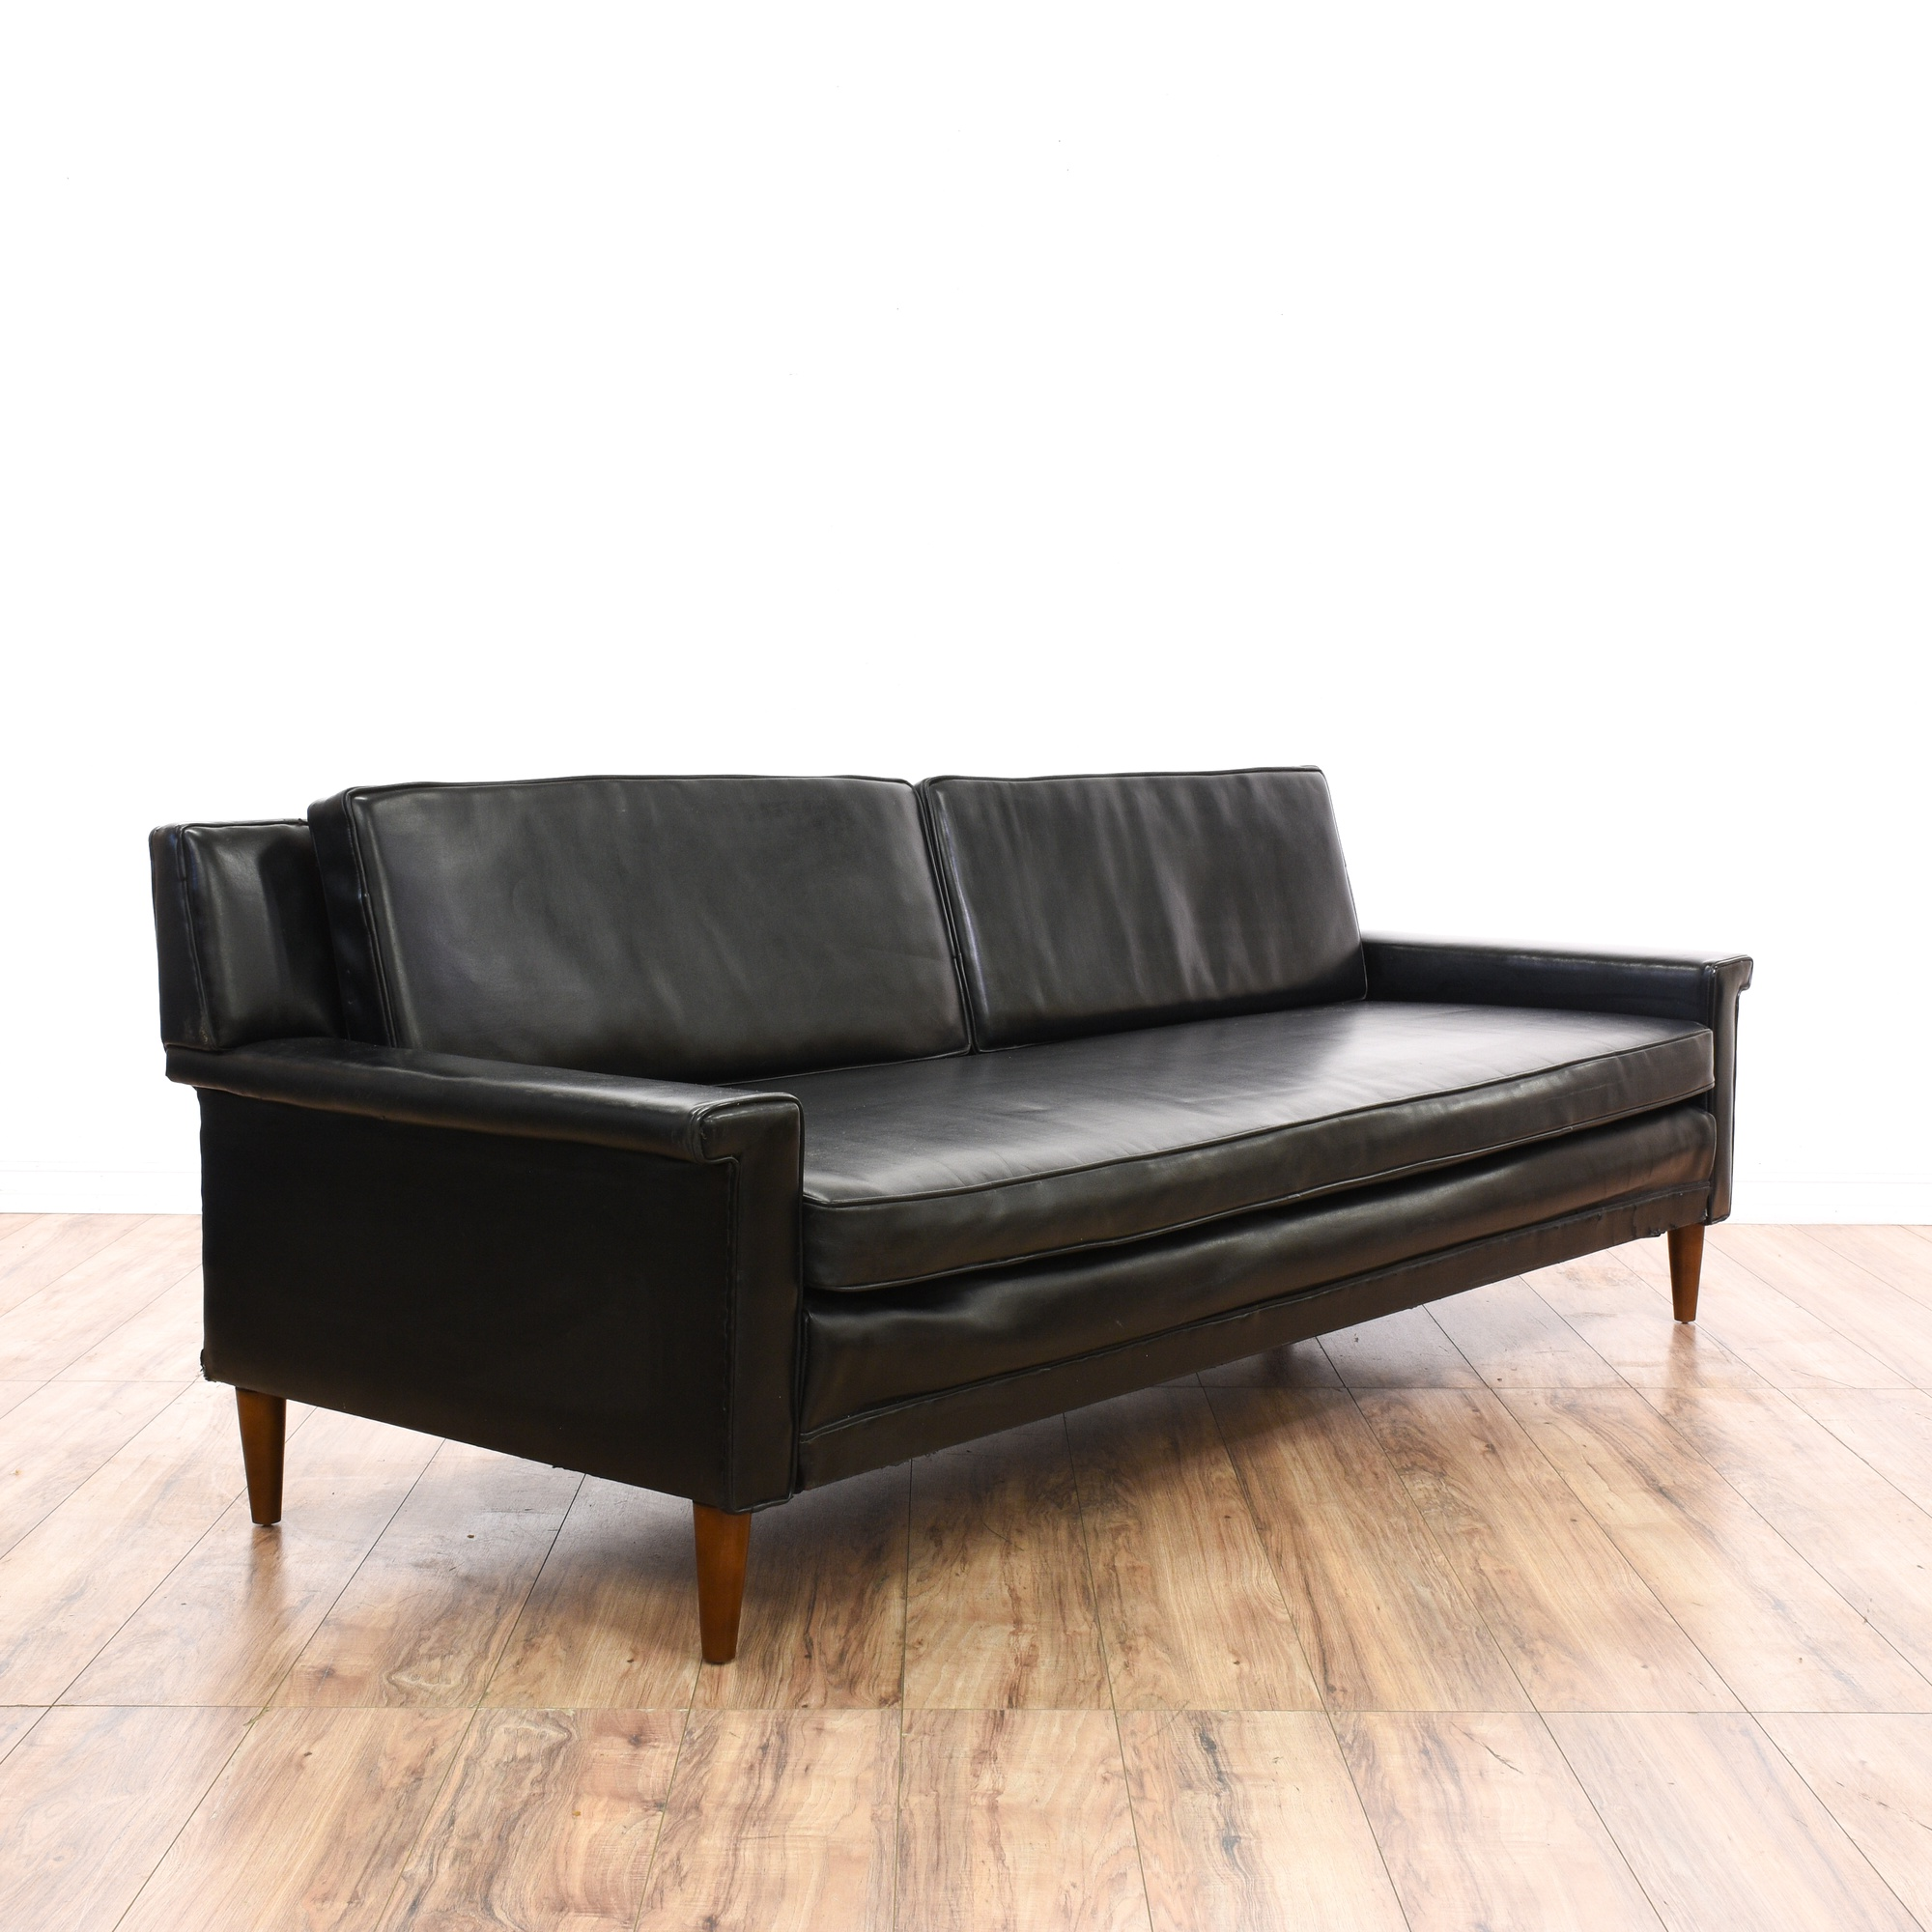 Black Vinyl Mid Century Modern Roll Out Sofa Bed  : convertw2000amph2000ampfitcropamprotateexif from www.loveseat.com size 2000 x 2000 jpeg 270kB